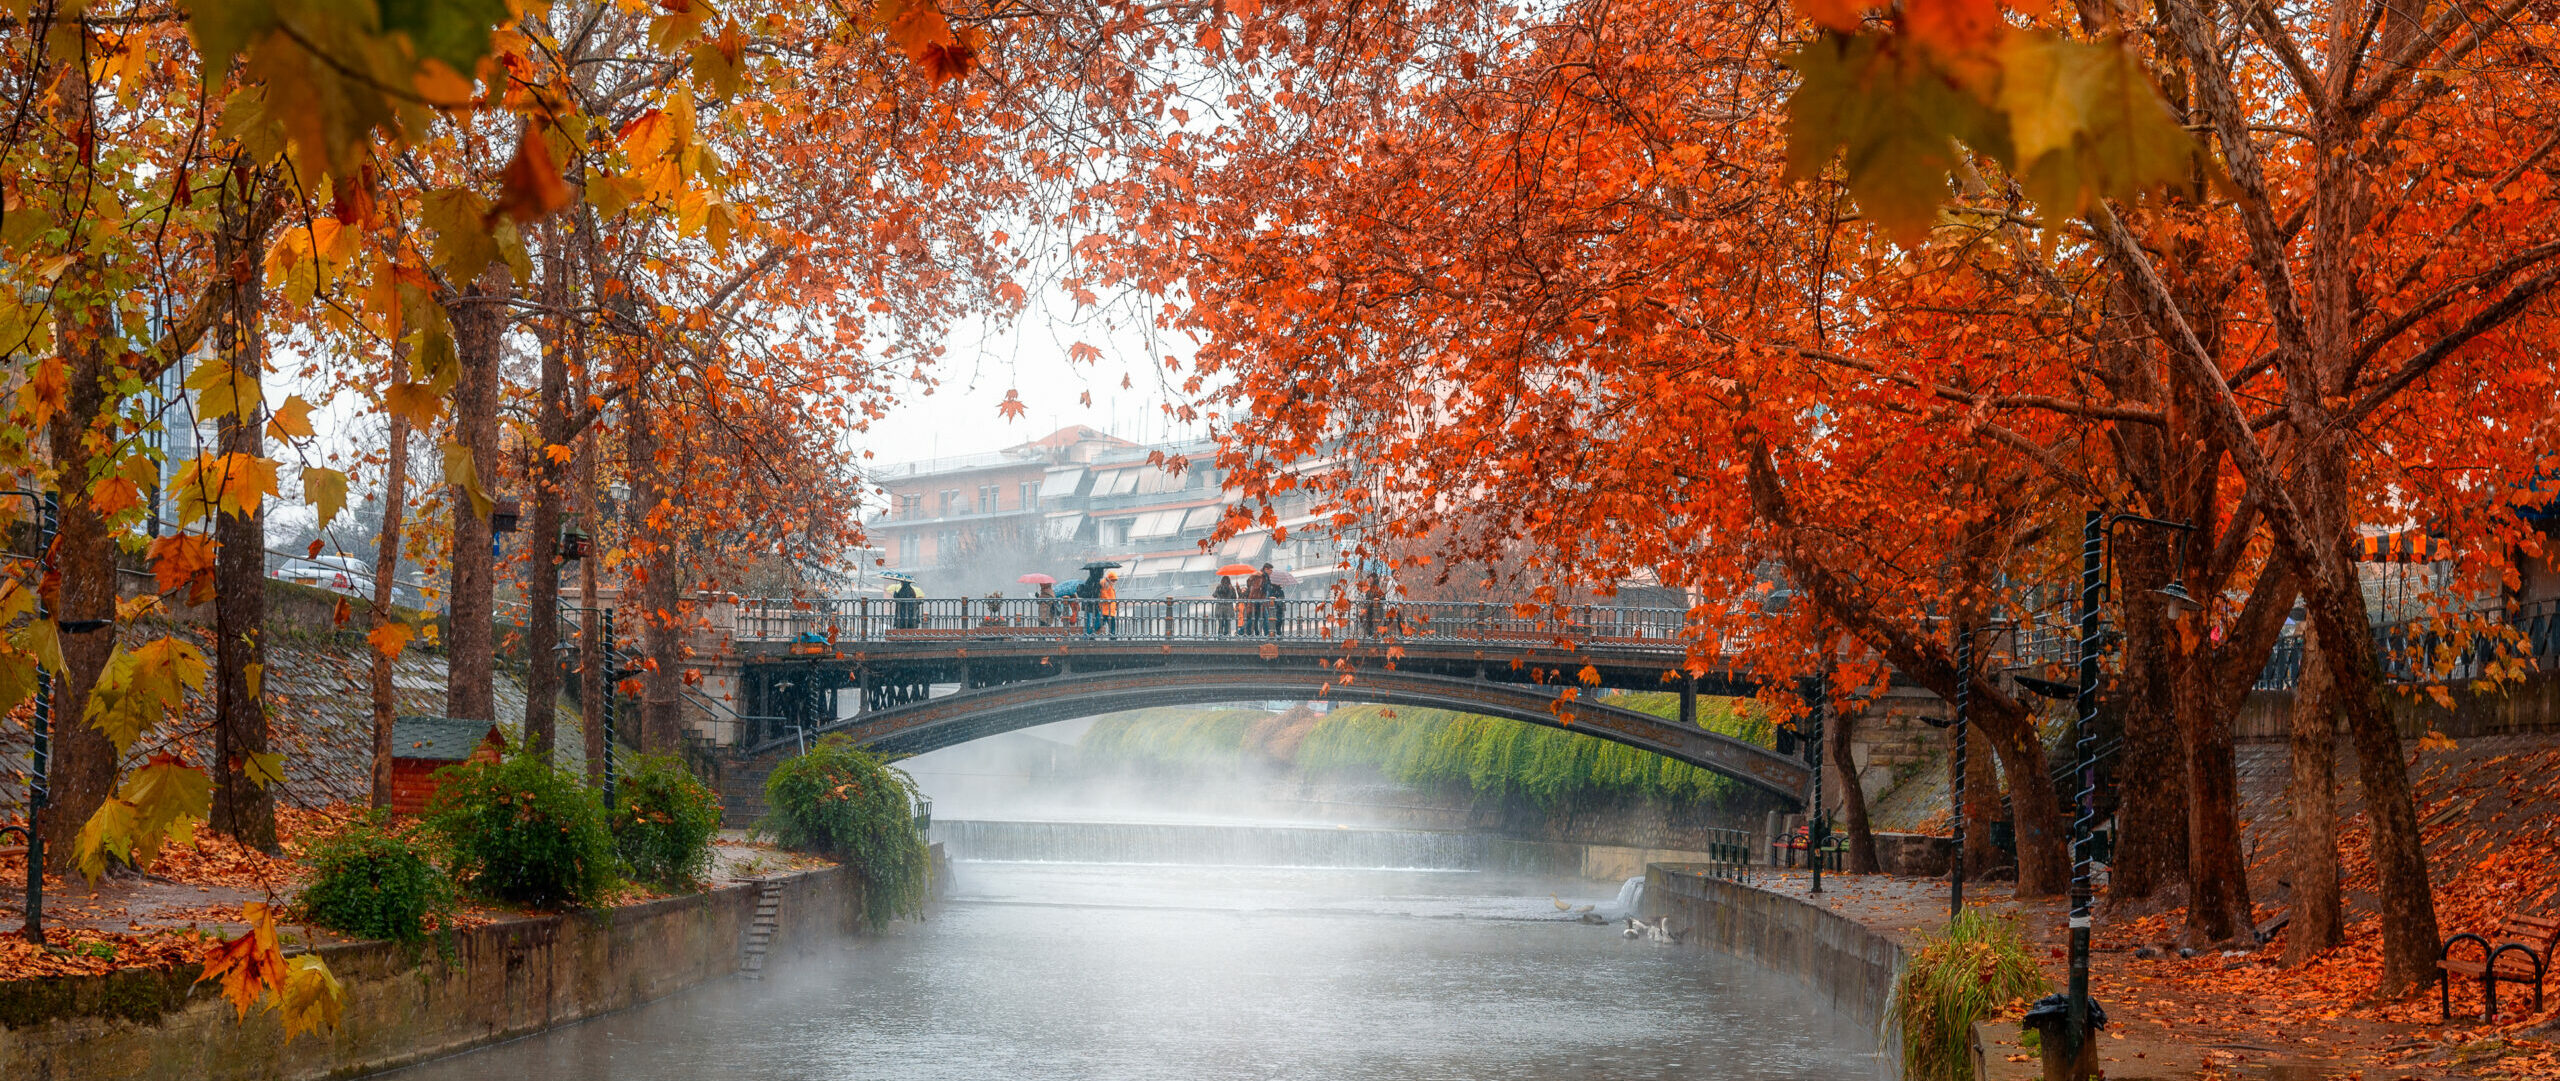 Trikala: One of the oldest cities in Europe